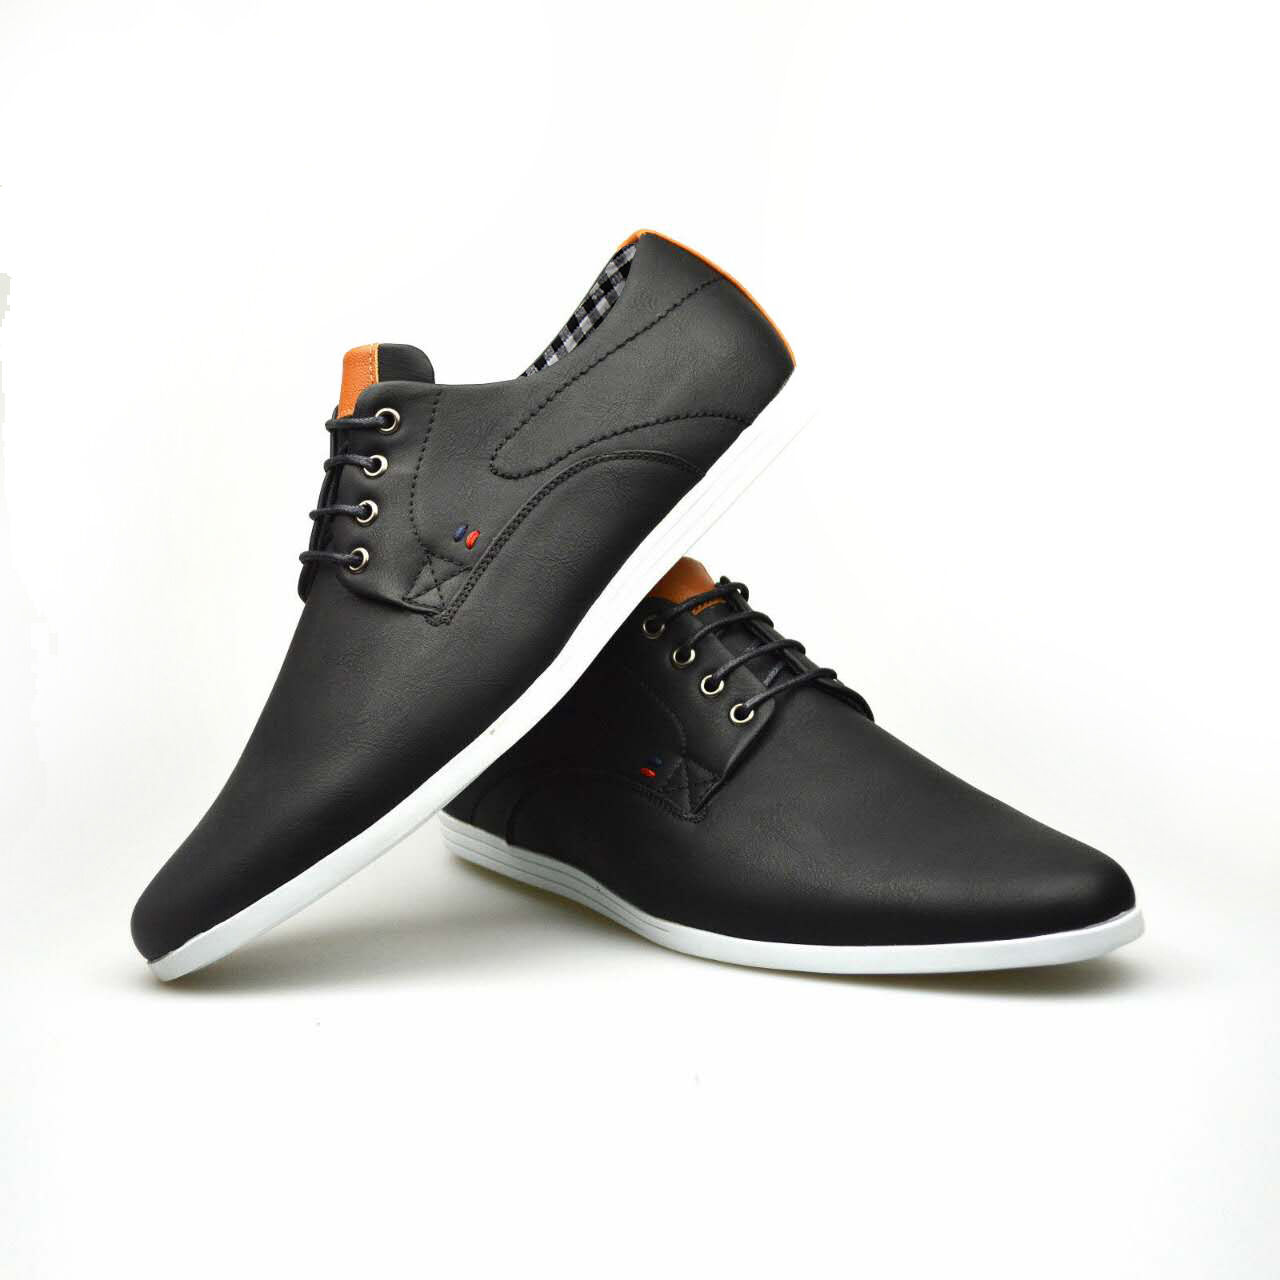 Browse Reeboks wide selection of mens shoes today Designed for running training walking CrossFit and everything in between Find your style today